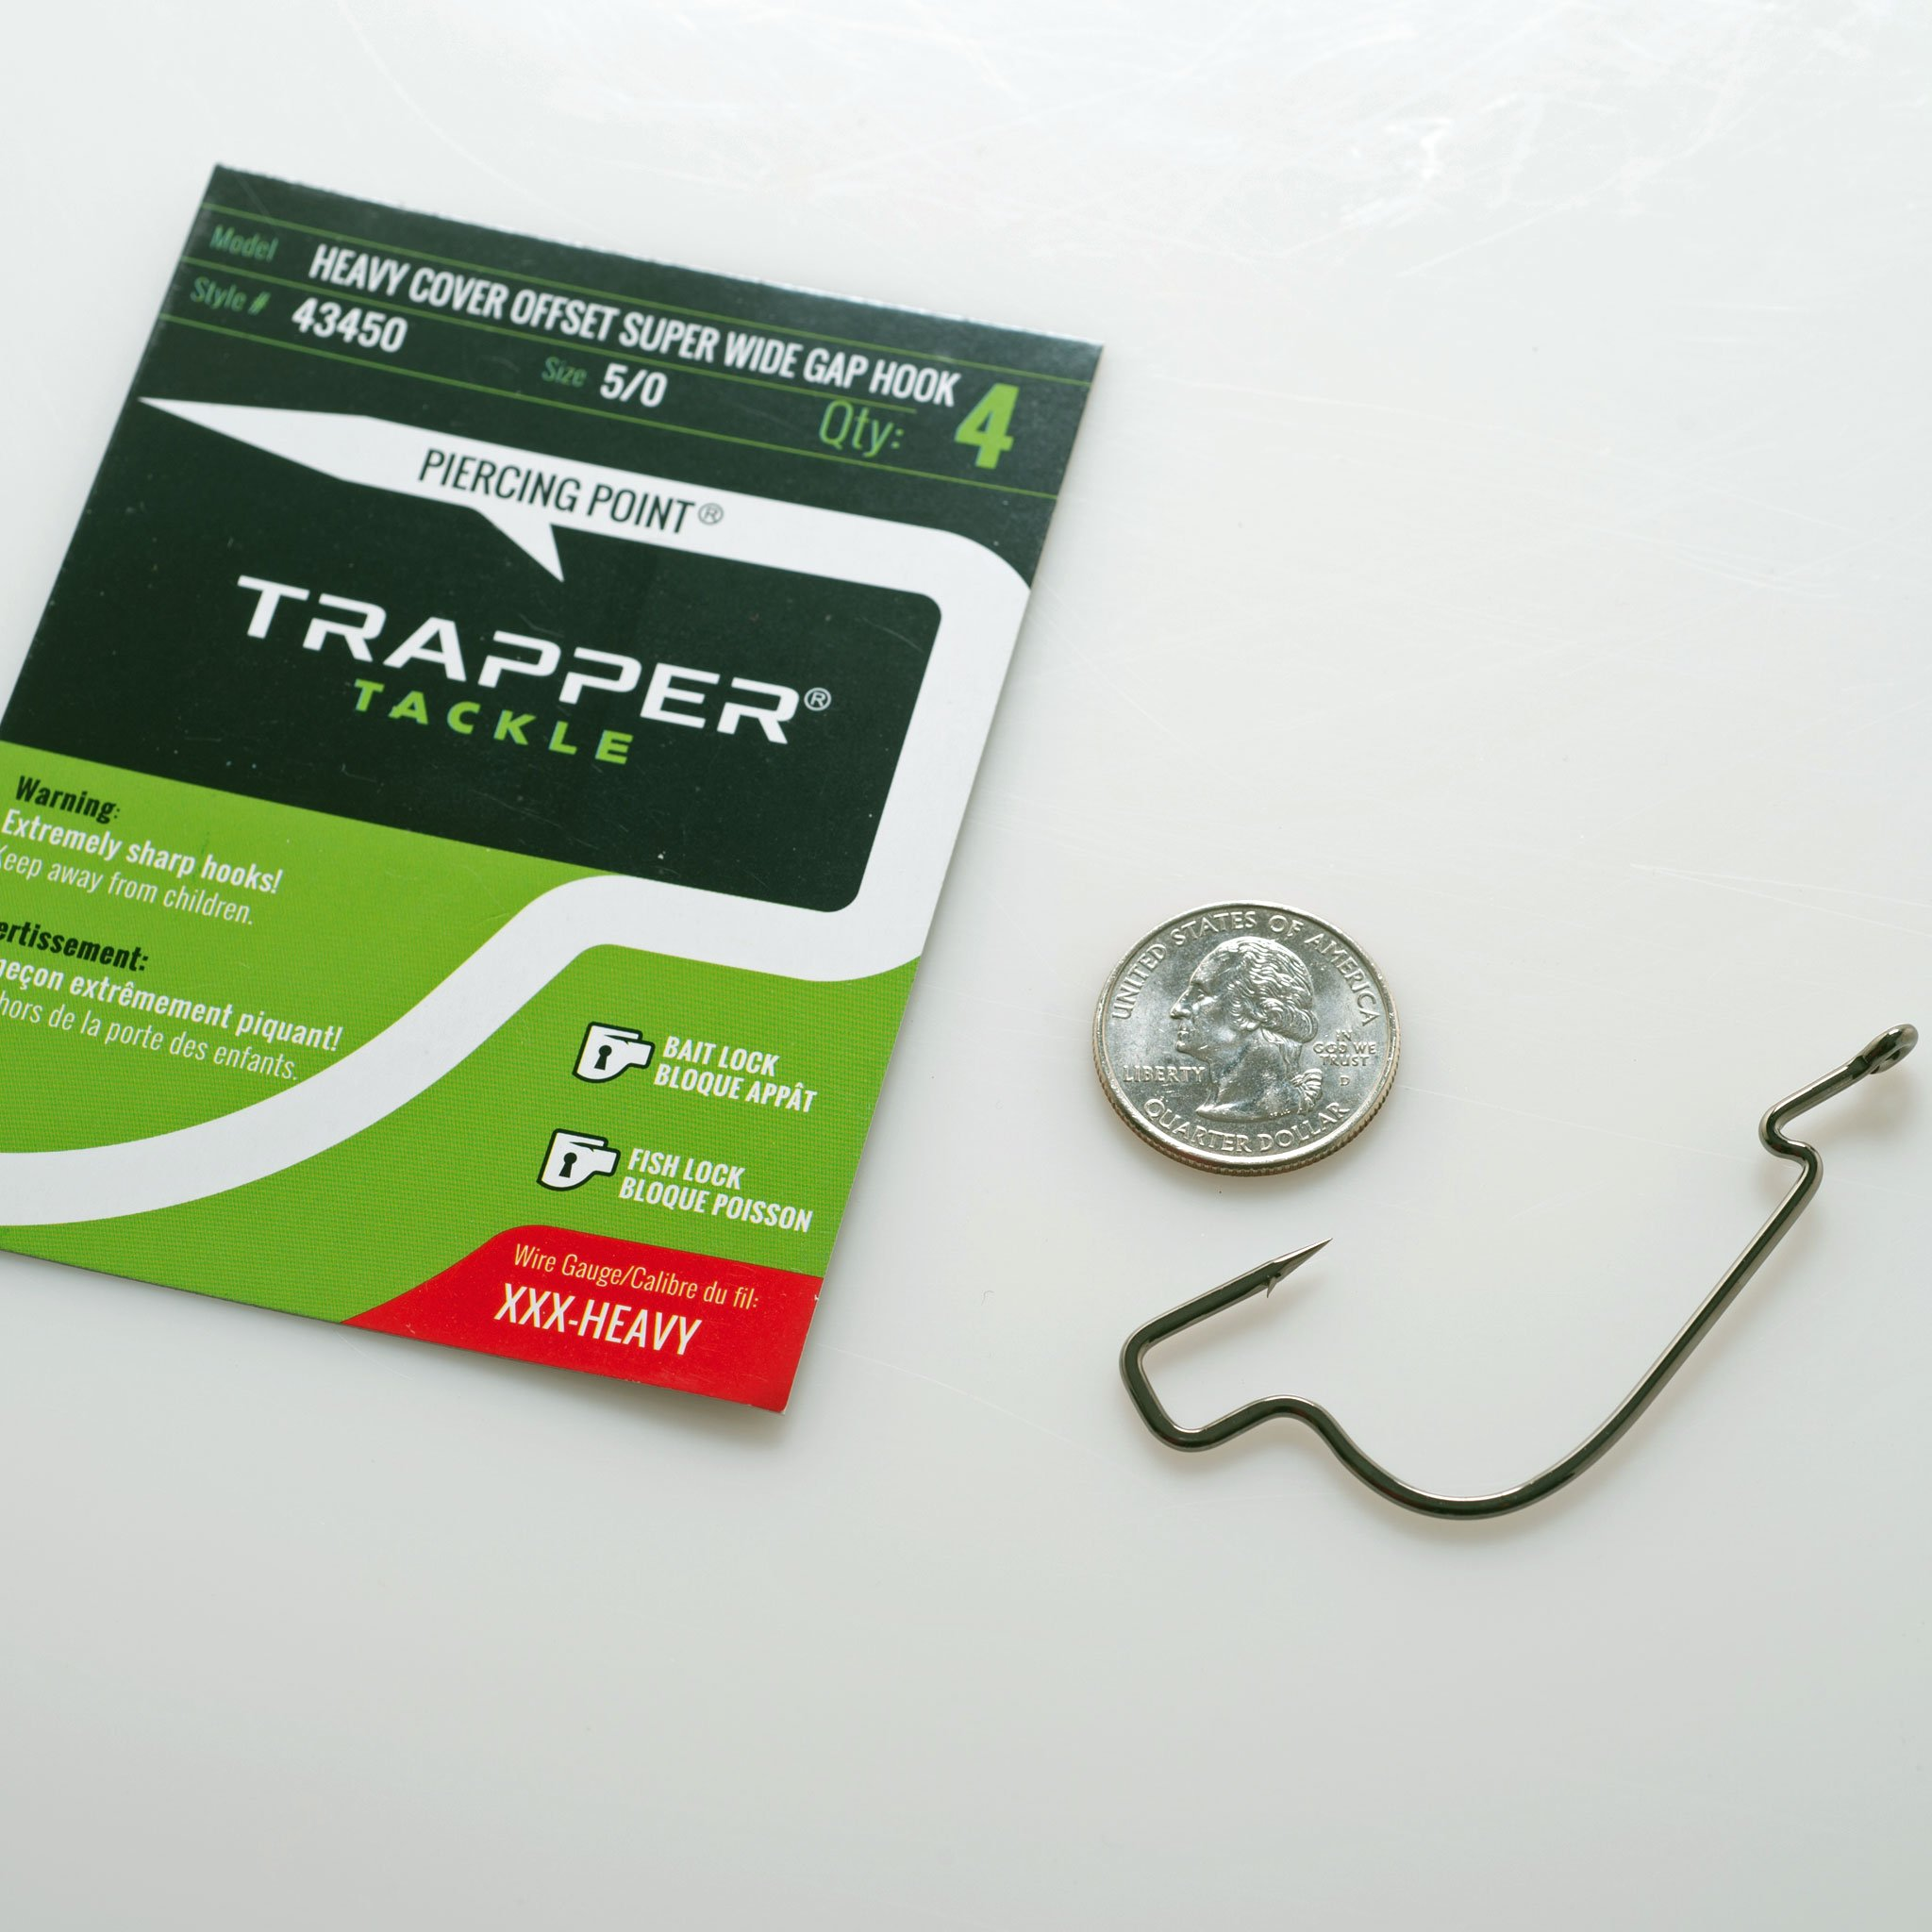 TRAPPER HEAVY COVER OFFSET SUPER WIDE GAP HOOK 5